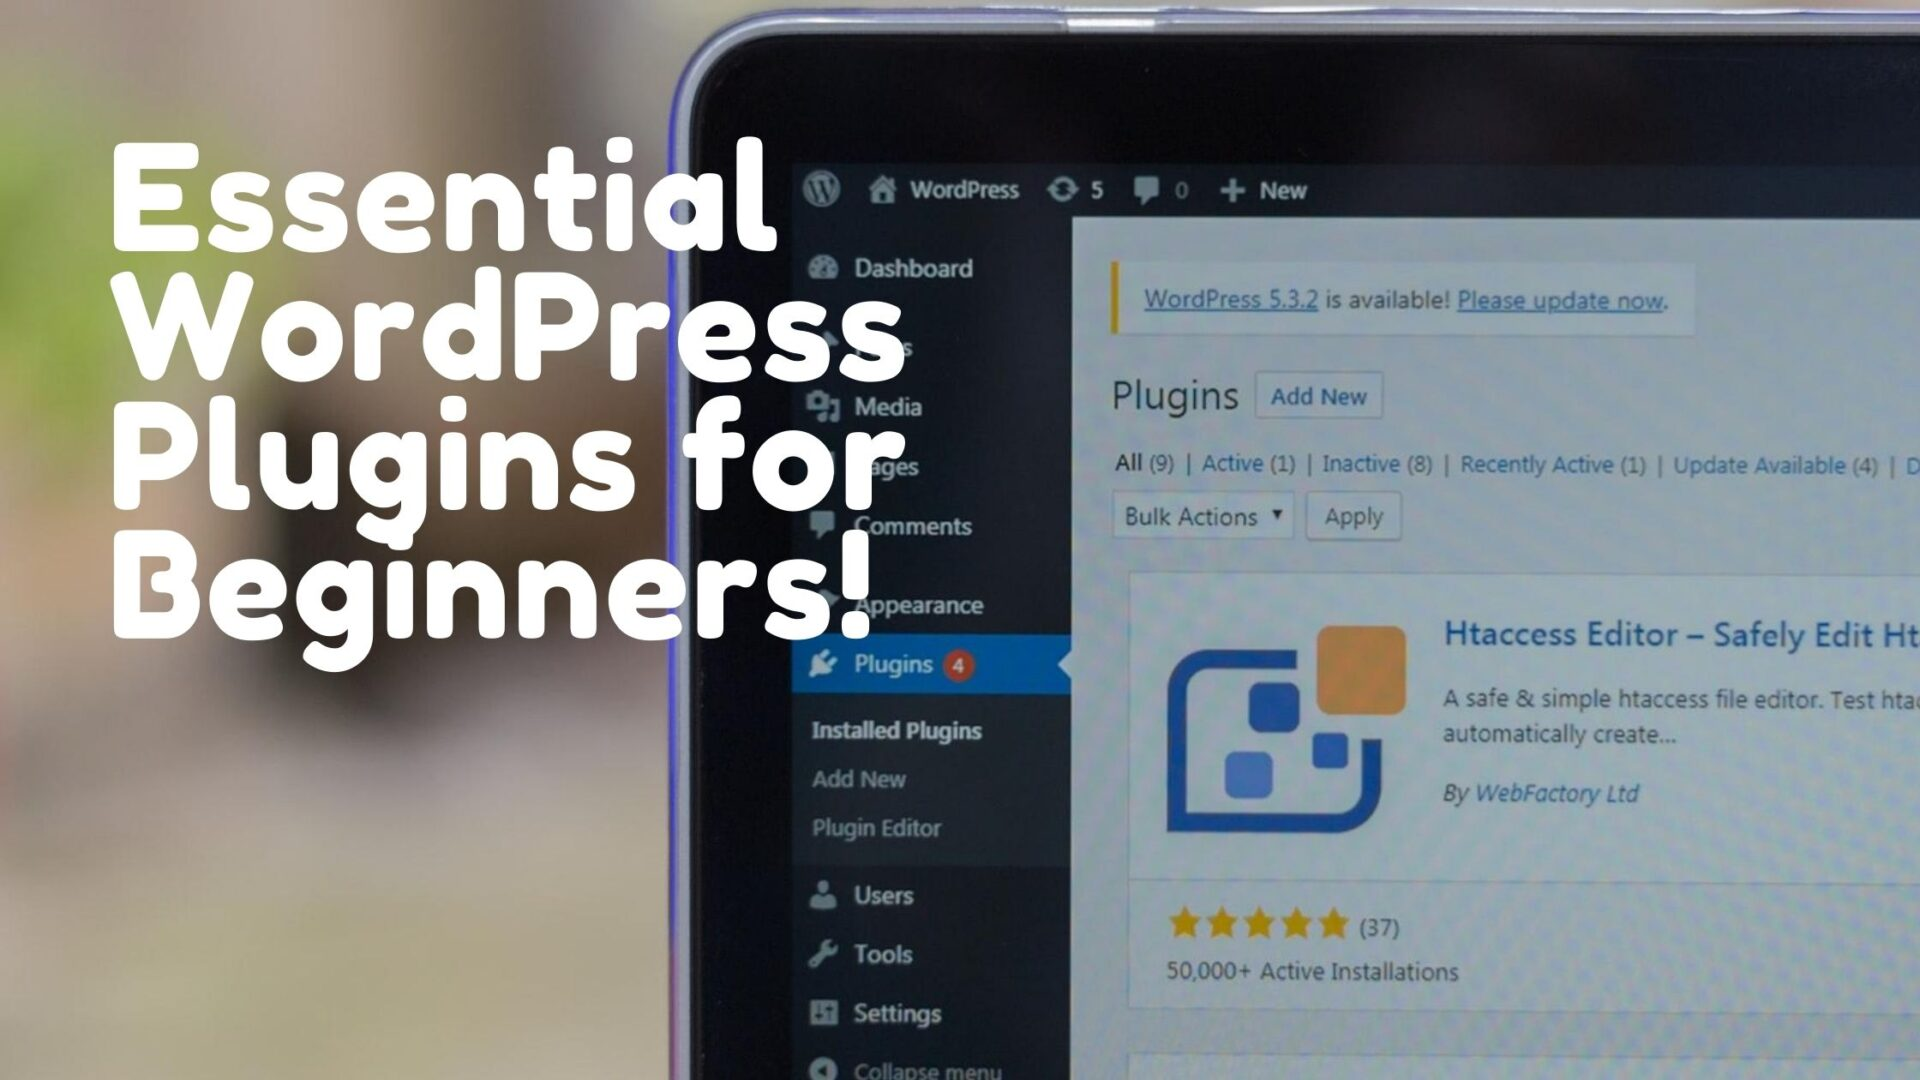 Essential WordPress Plugins for Beginners!